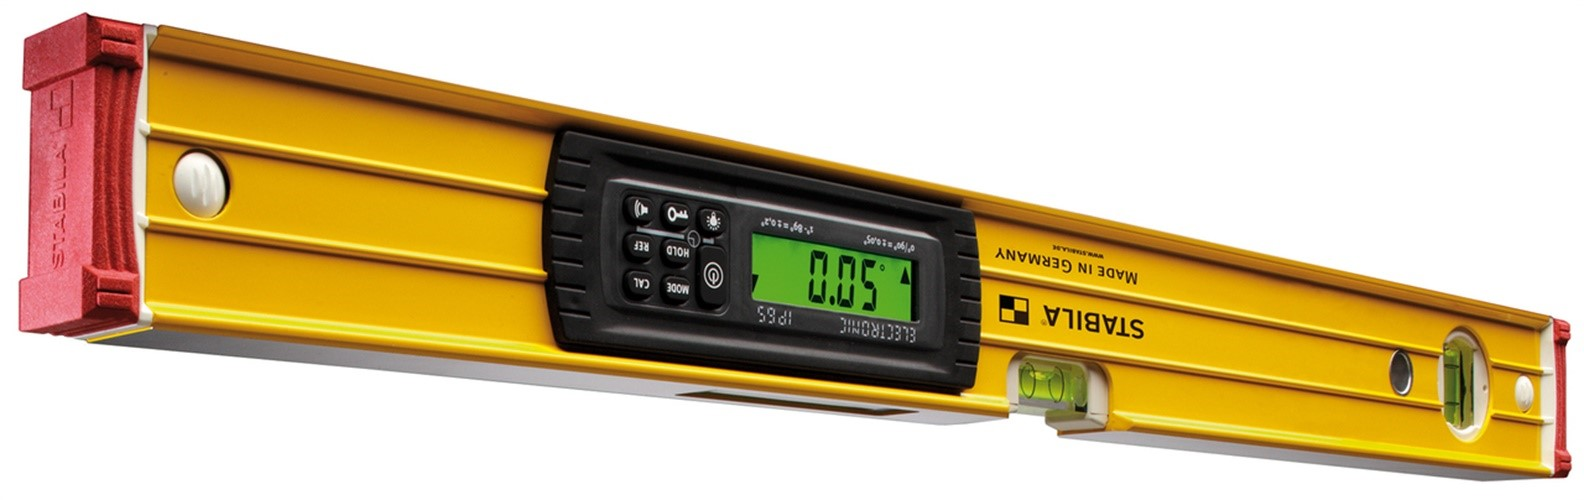 "Stabila 36520 24"" IP66 MagNETIC TECH LEVEL W CASE by Stabila"